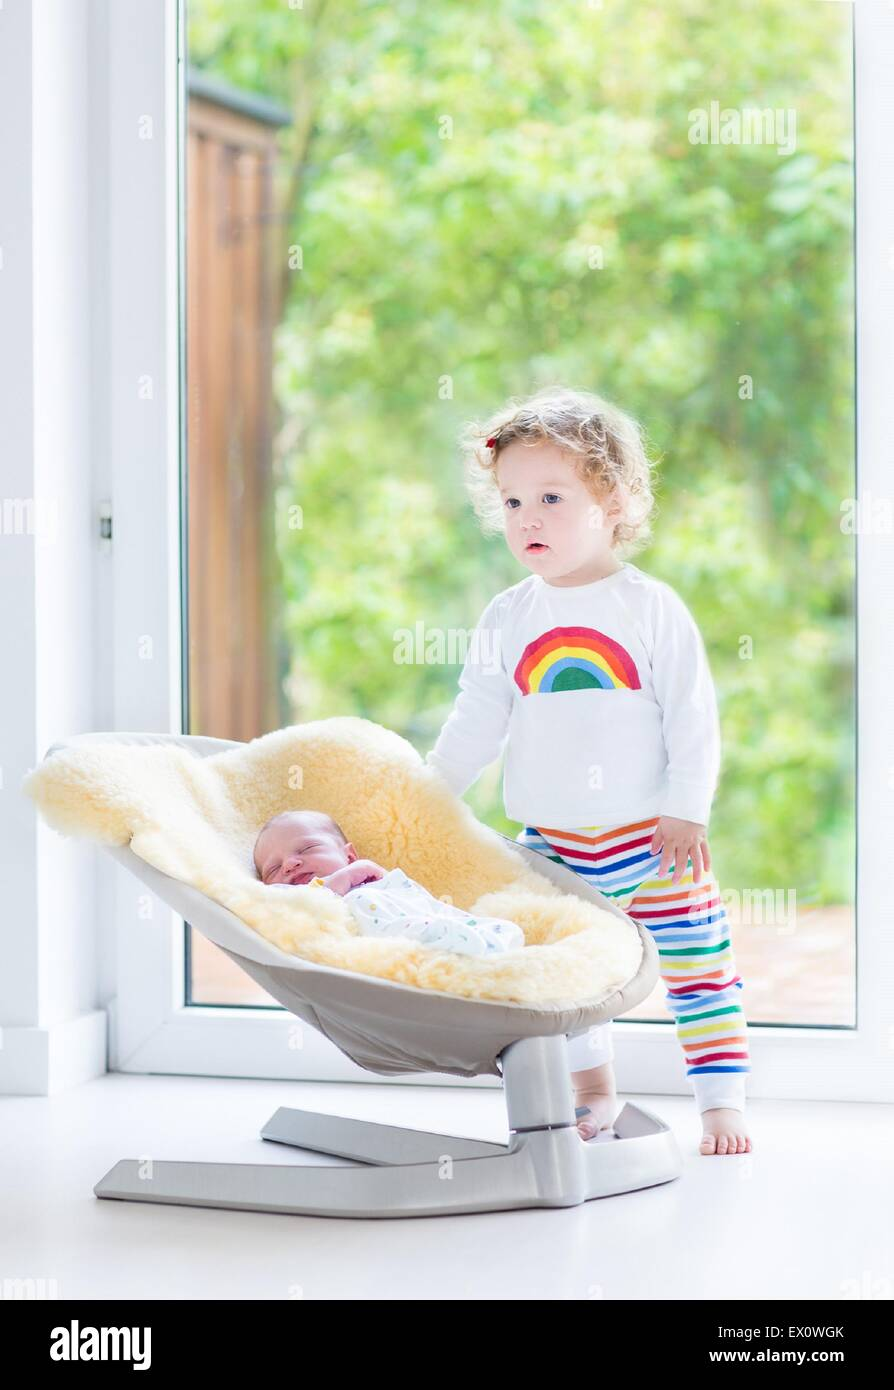 Cute toddler girl playing with her newborn baby brother relaxing in a swing next to a big window and door to the - Stock Image